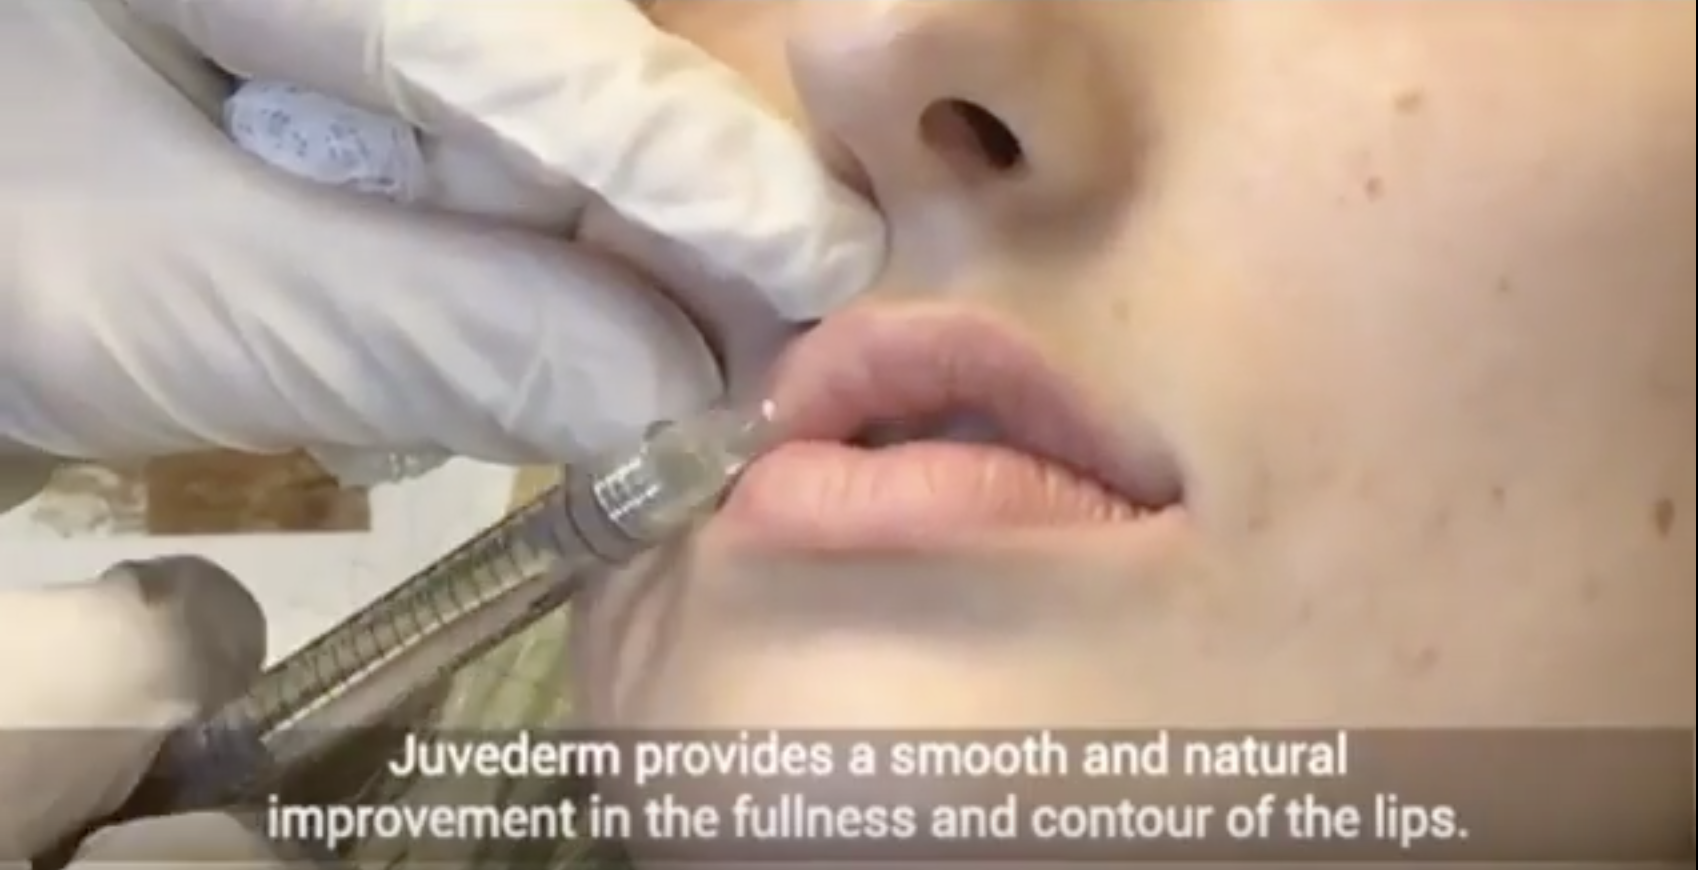 Lip augmentation with Juvederm by Kami Parsa MD